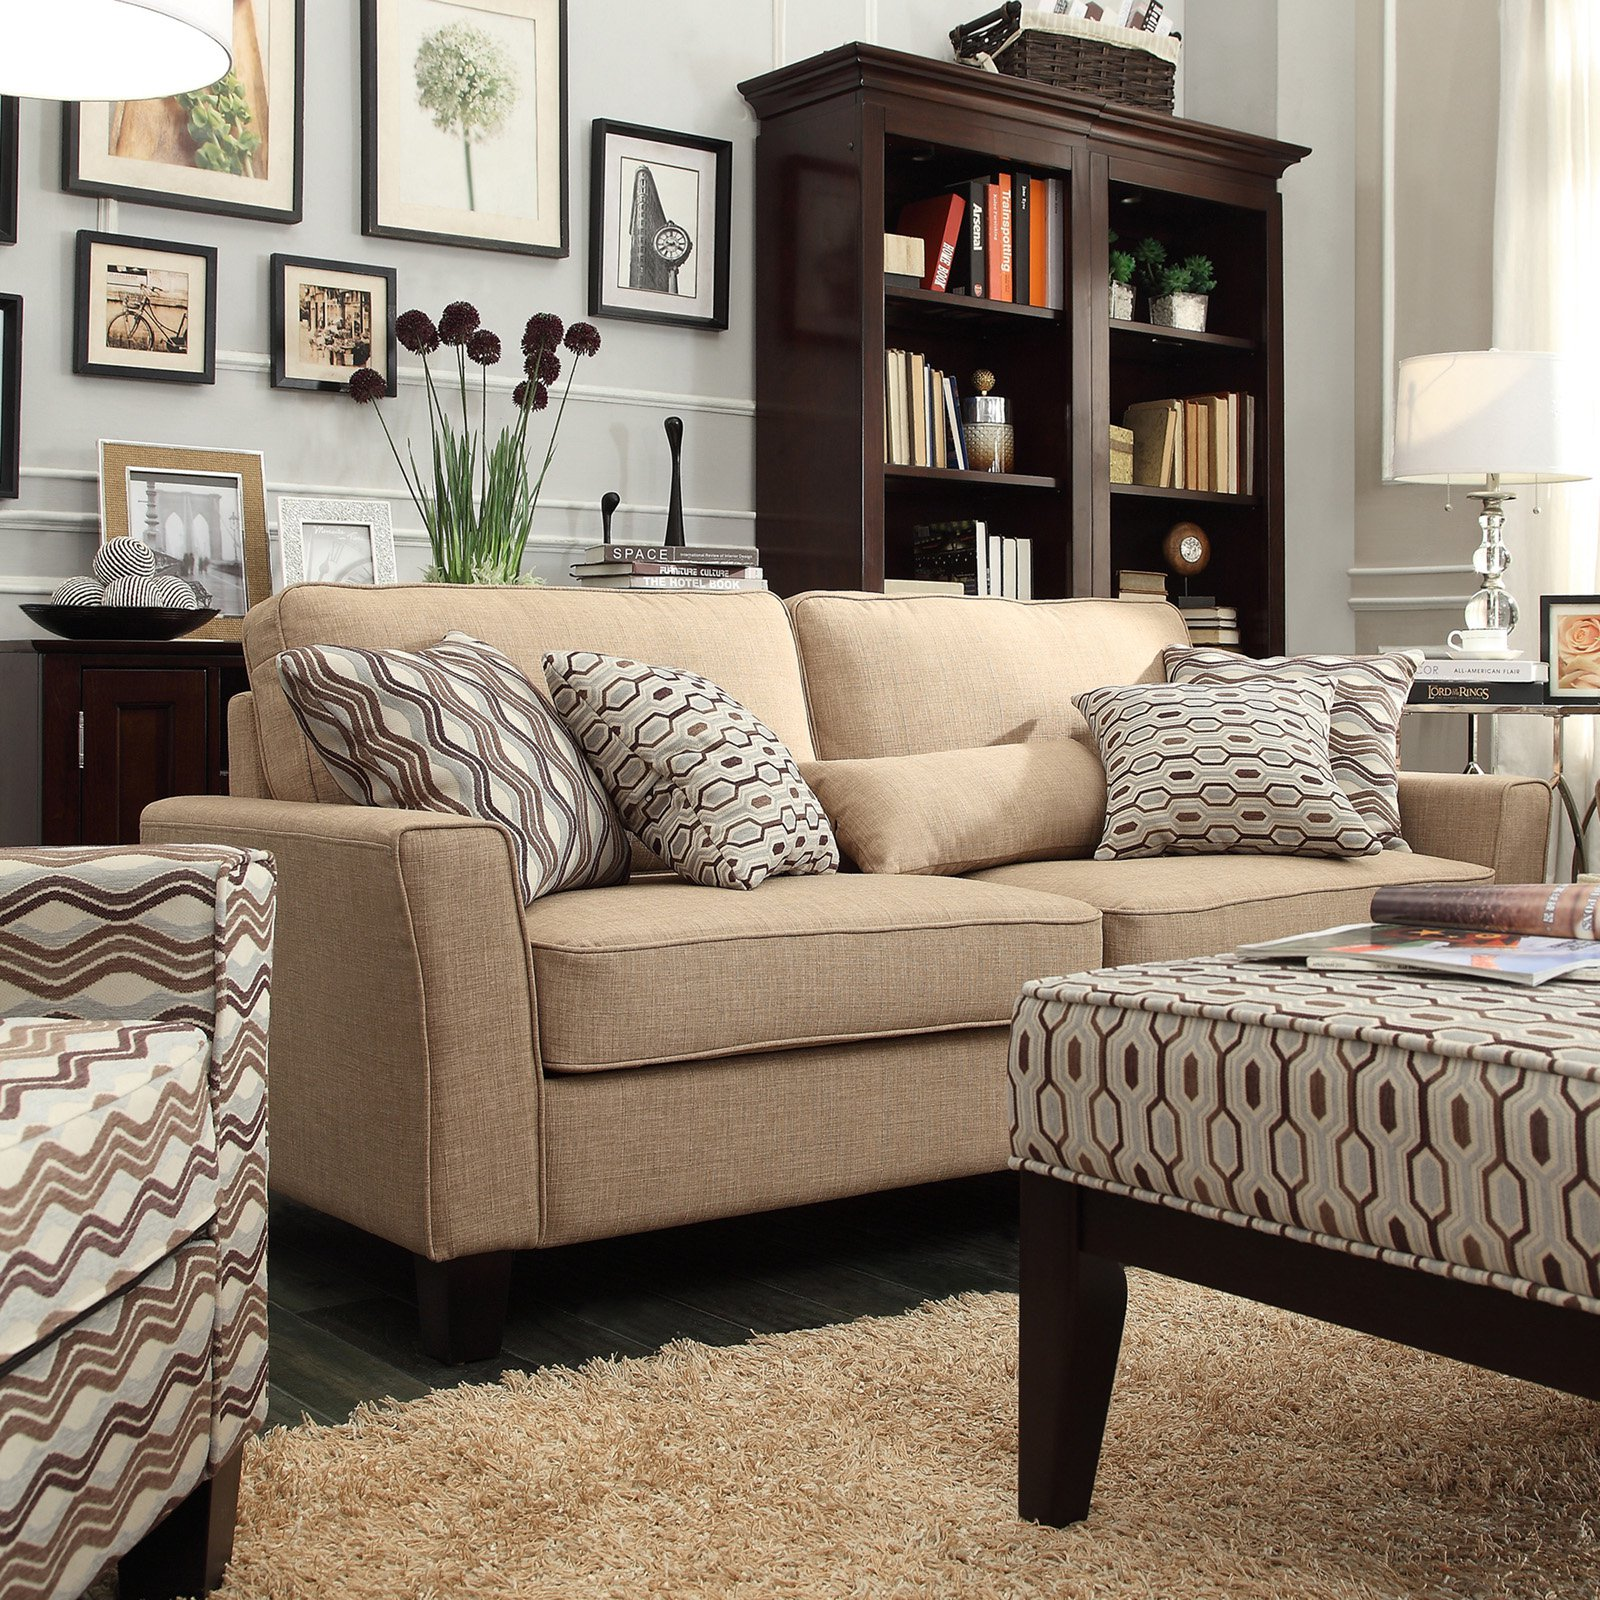 Chelsea Lane Upholstered Sofa - Light Brown